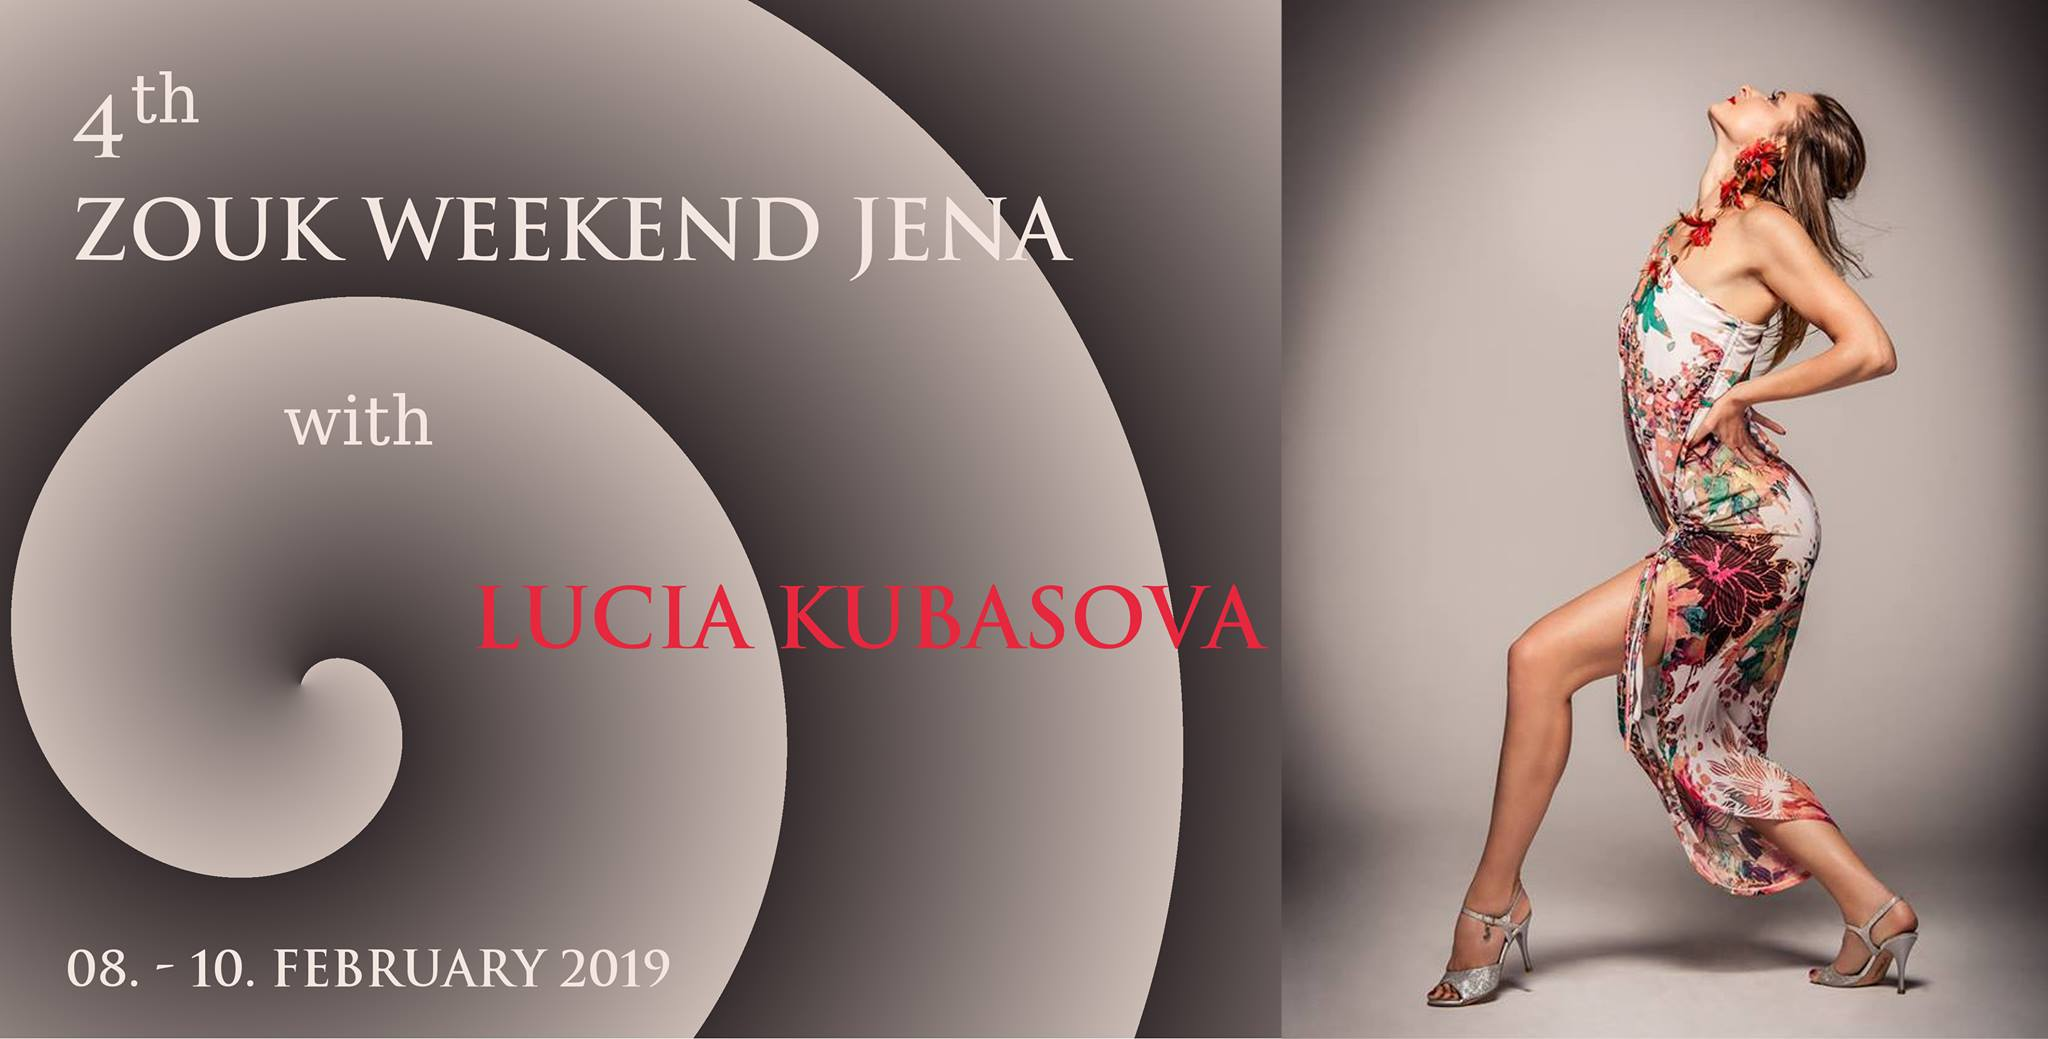 4. Zouk Weekend Jena 2019